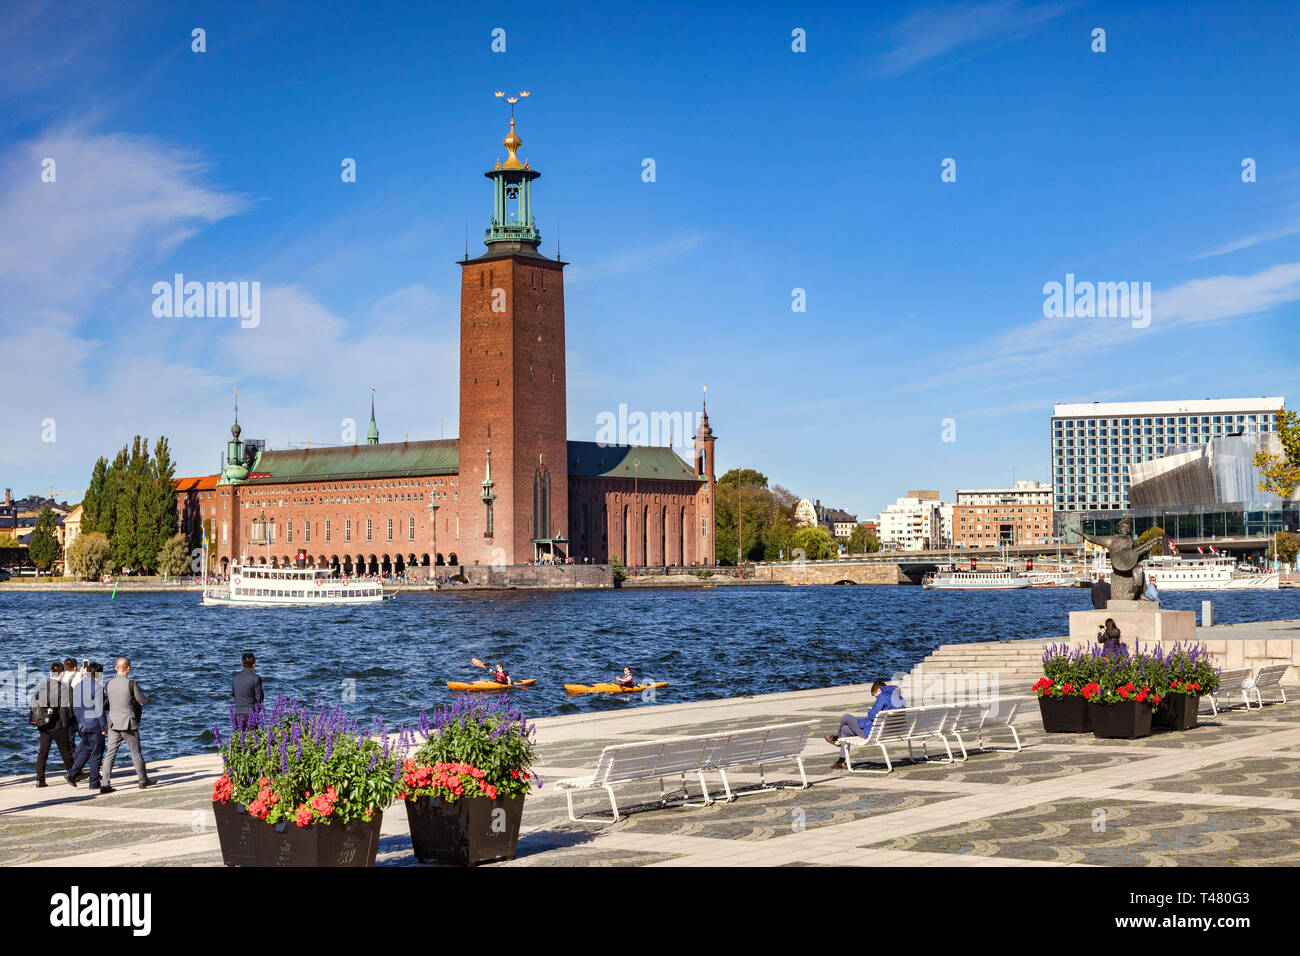 16 September 2018: Stockholm, Sweden - The City Hall, one of Sweden's most famous buildings, and home of the Nobel Banquet. Two kayaks in the water. - Stock Image